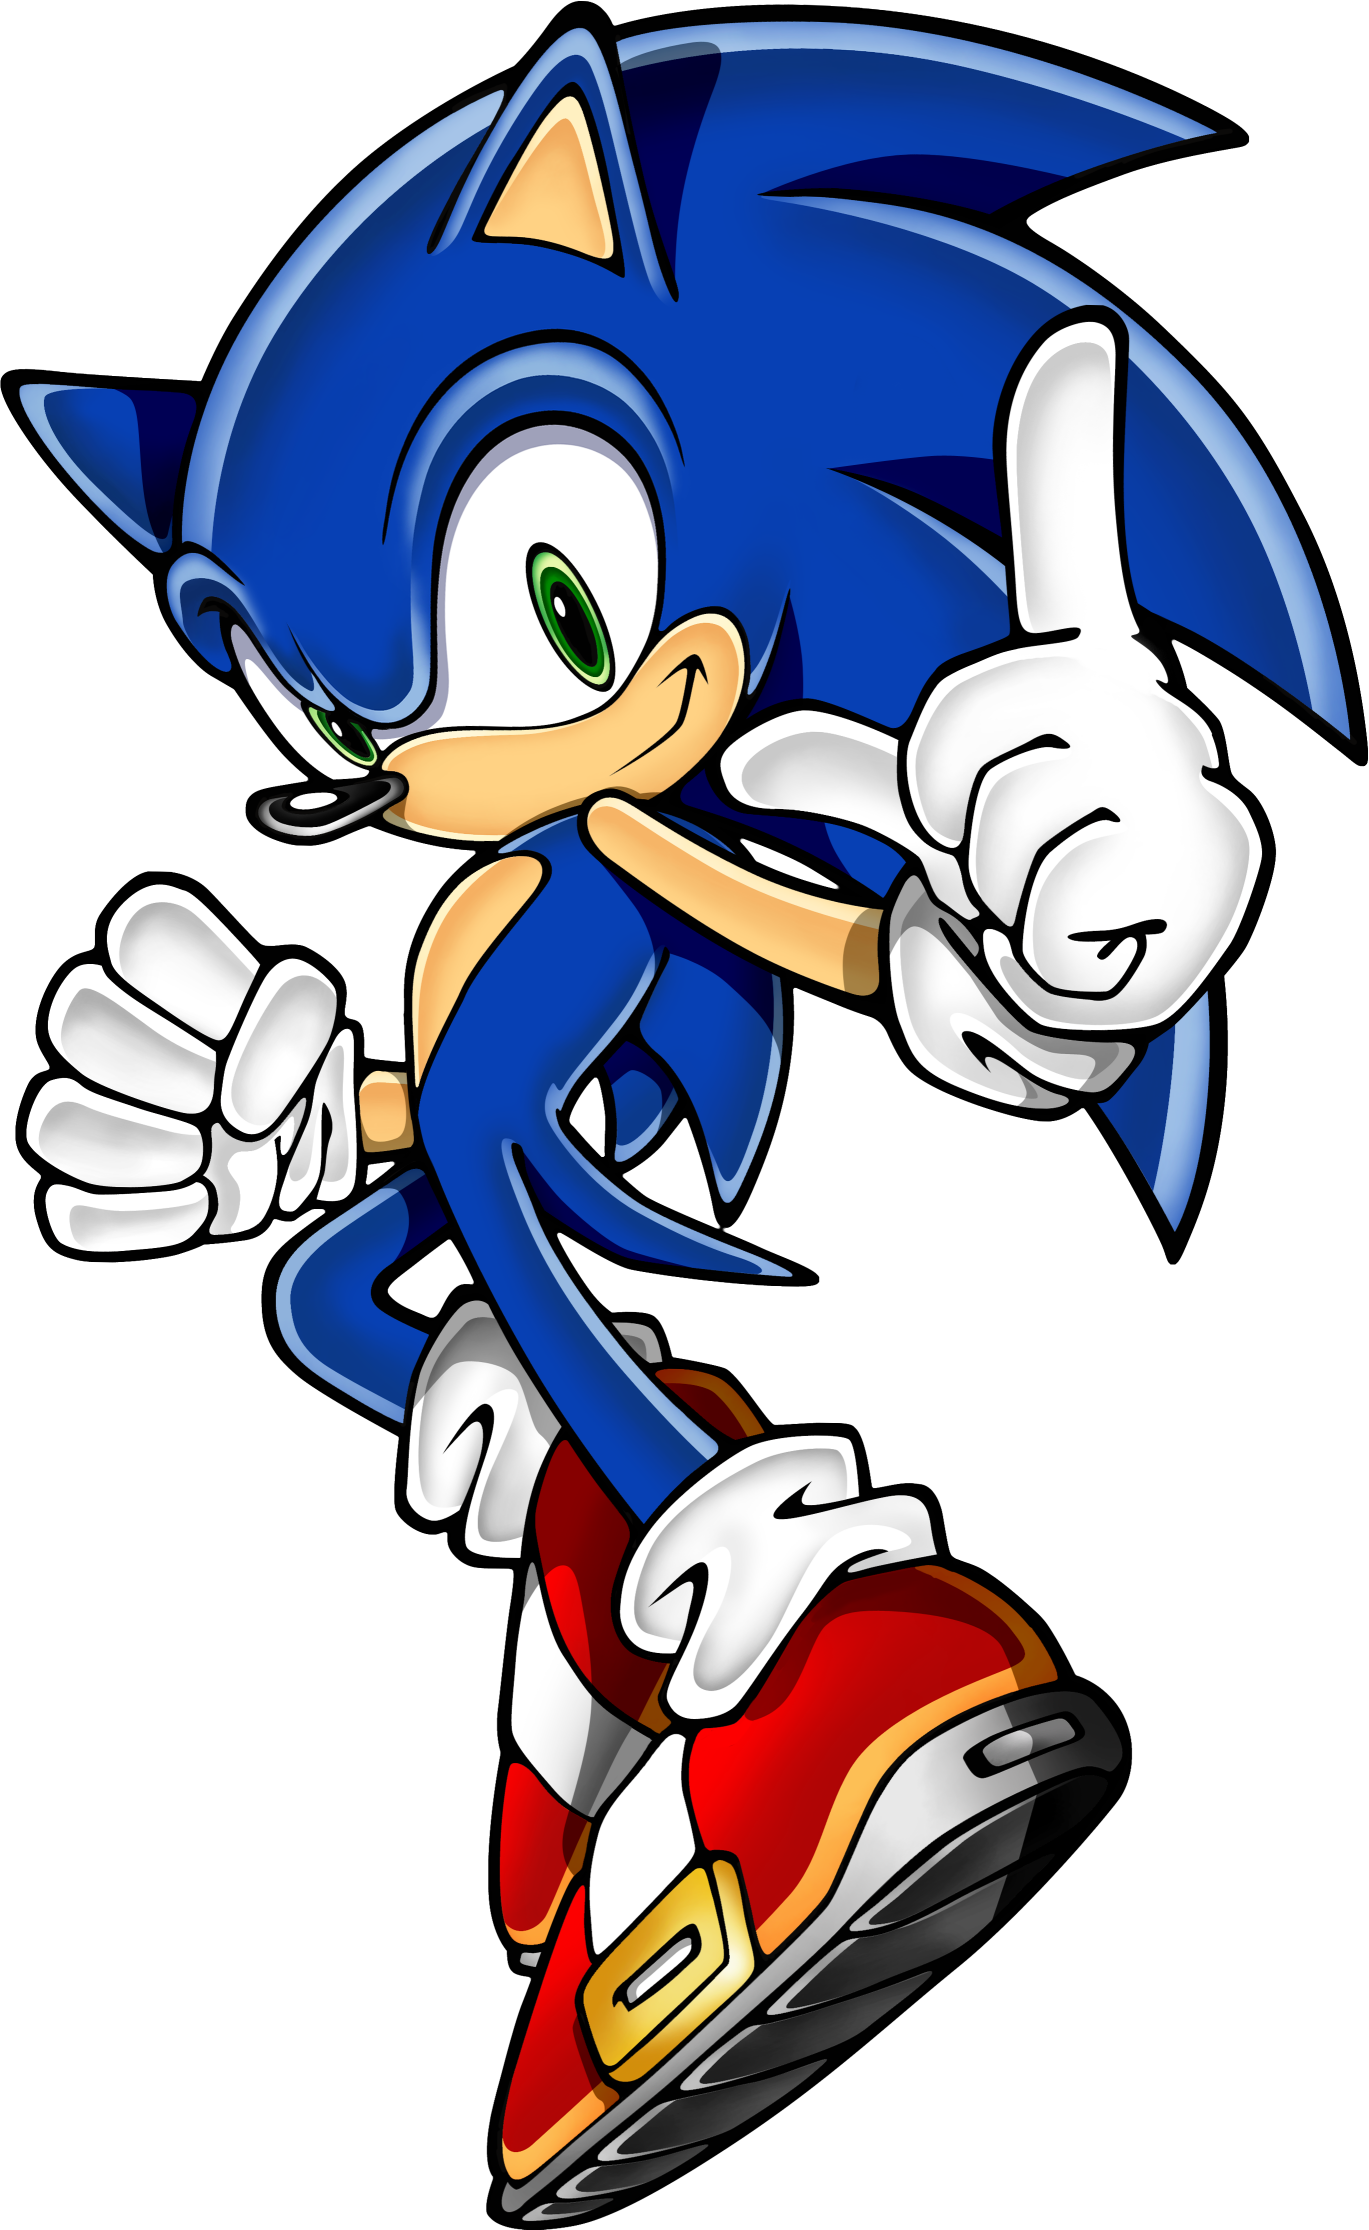 Sonic Rush Sonic The Hedgehog Gallery Sonic Scanf